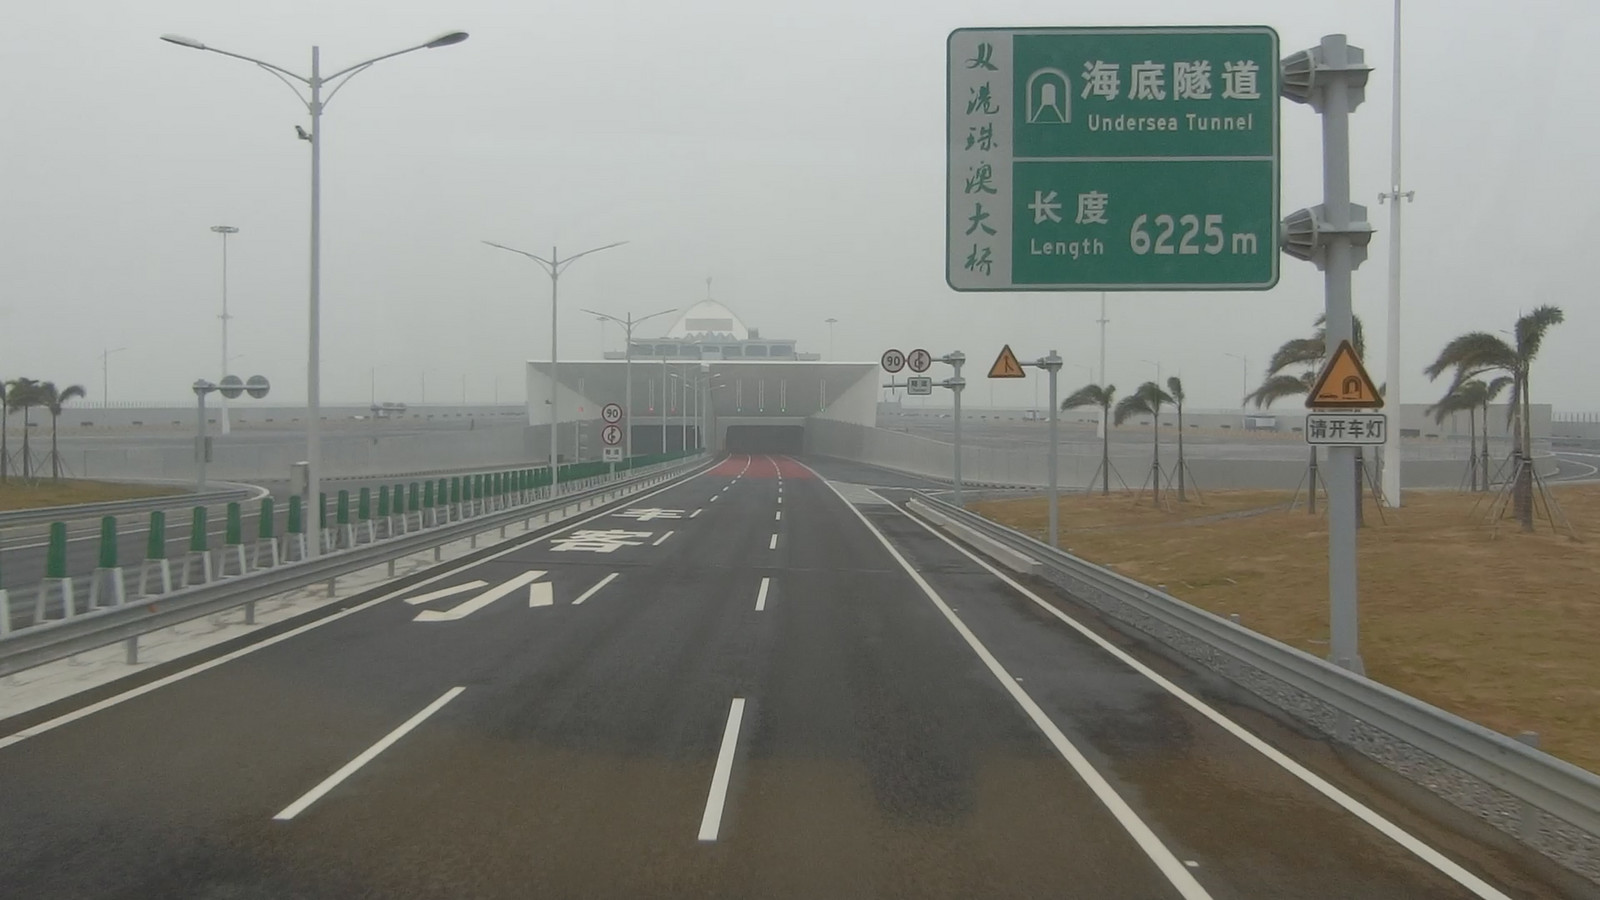 04hong_kongzhuhaimacao_bridge_tunne